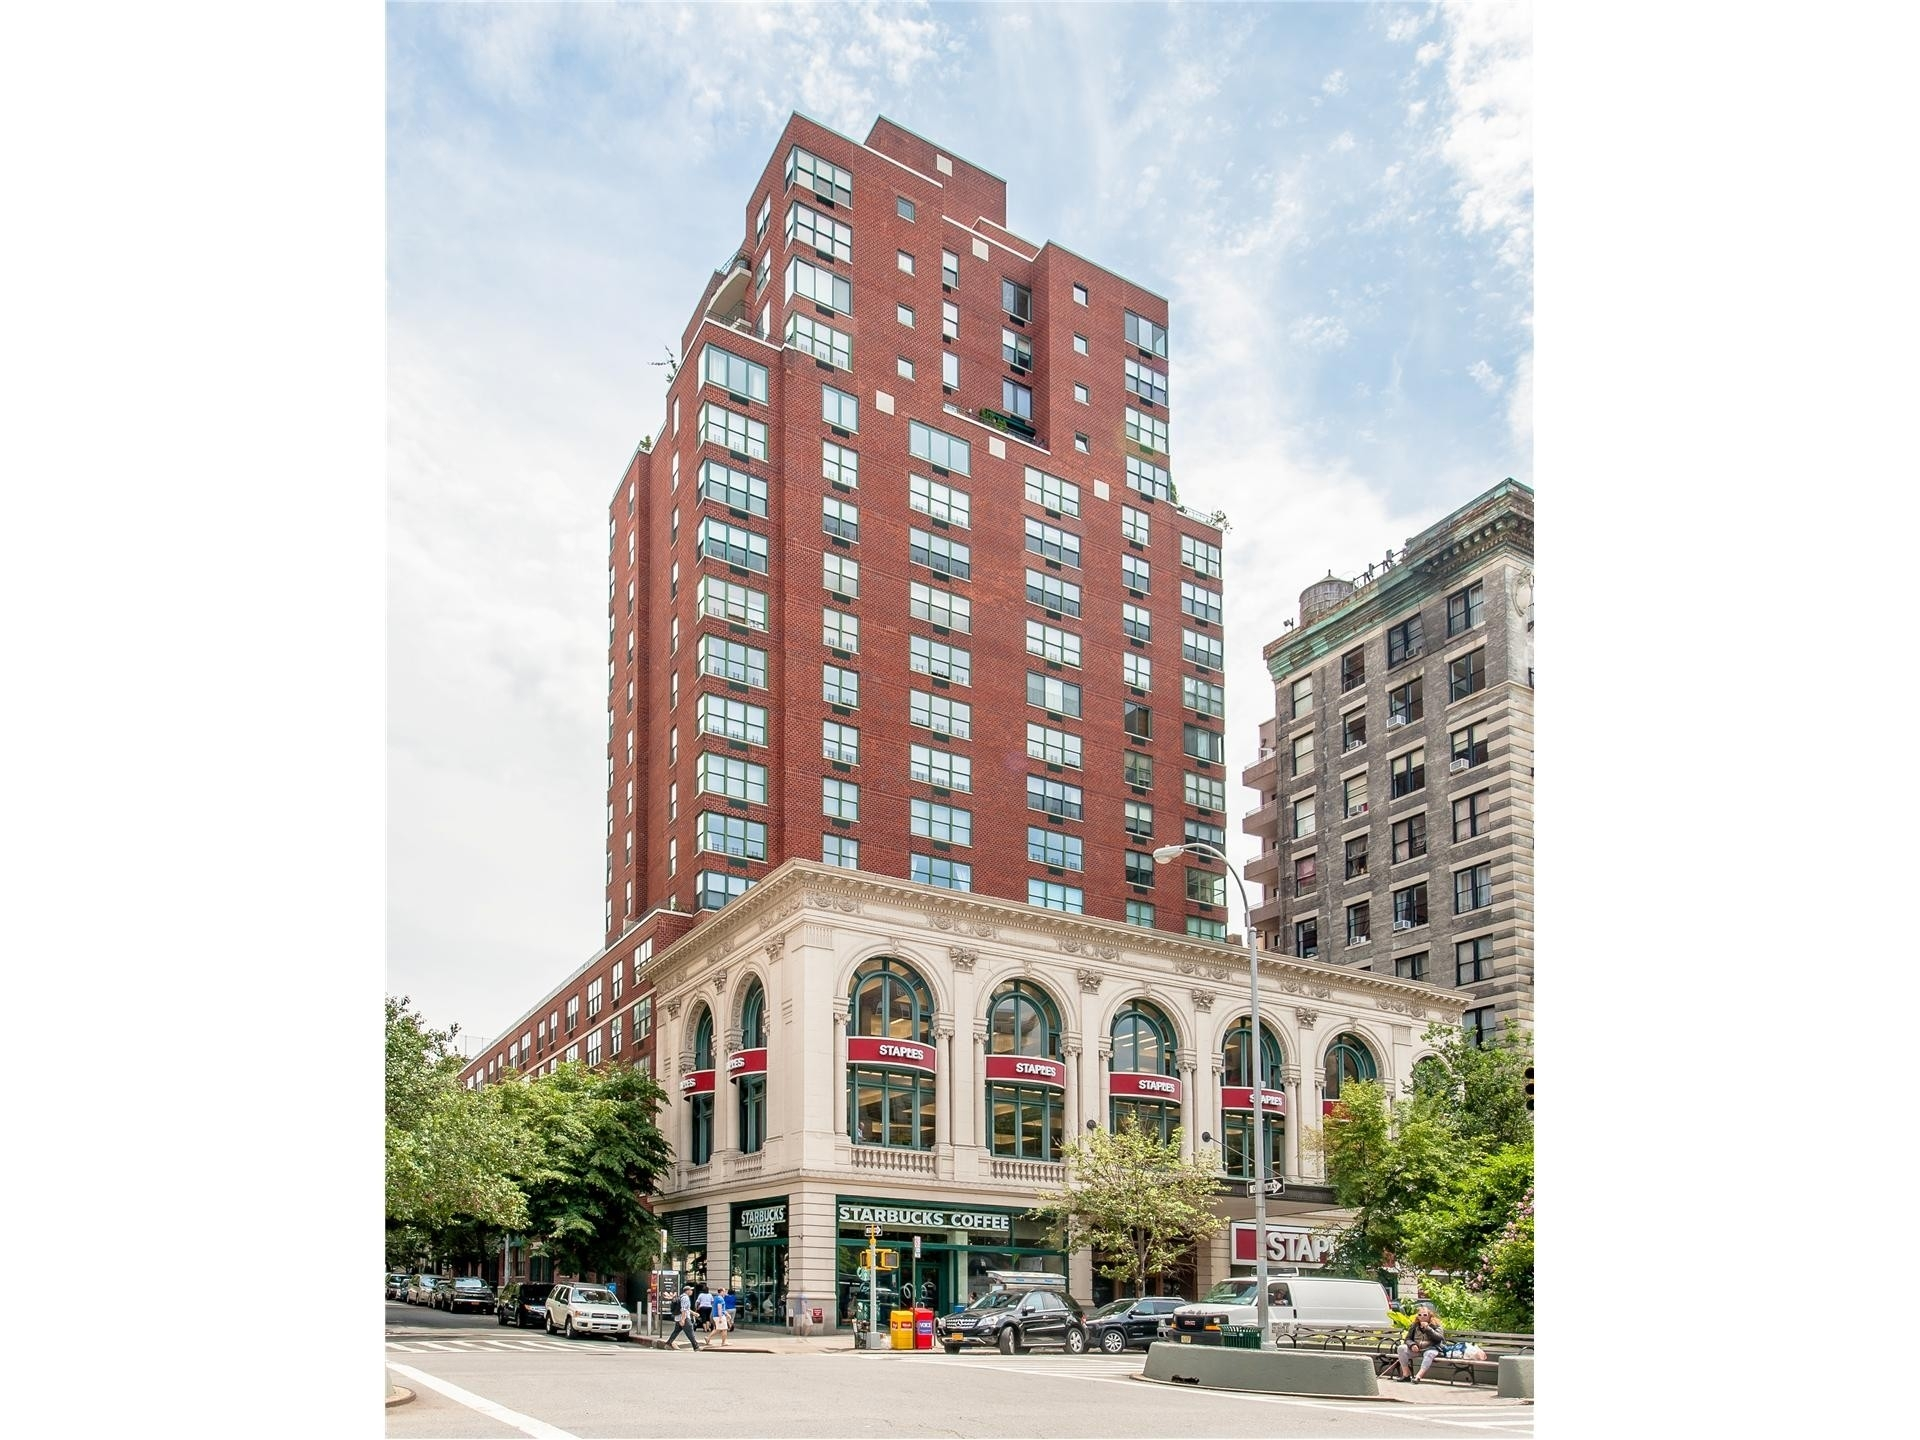 9. Condominiums at 2250 Broadway, 2N Upper West Side, New York, NY 10024